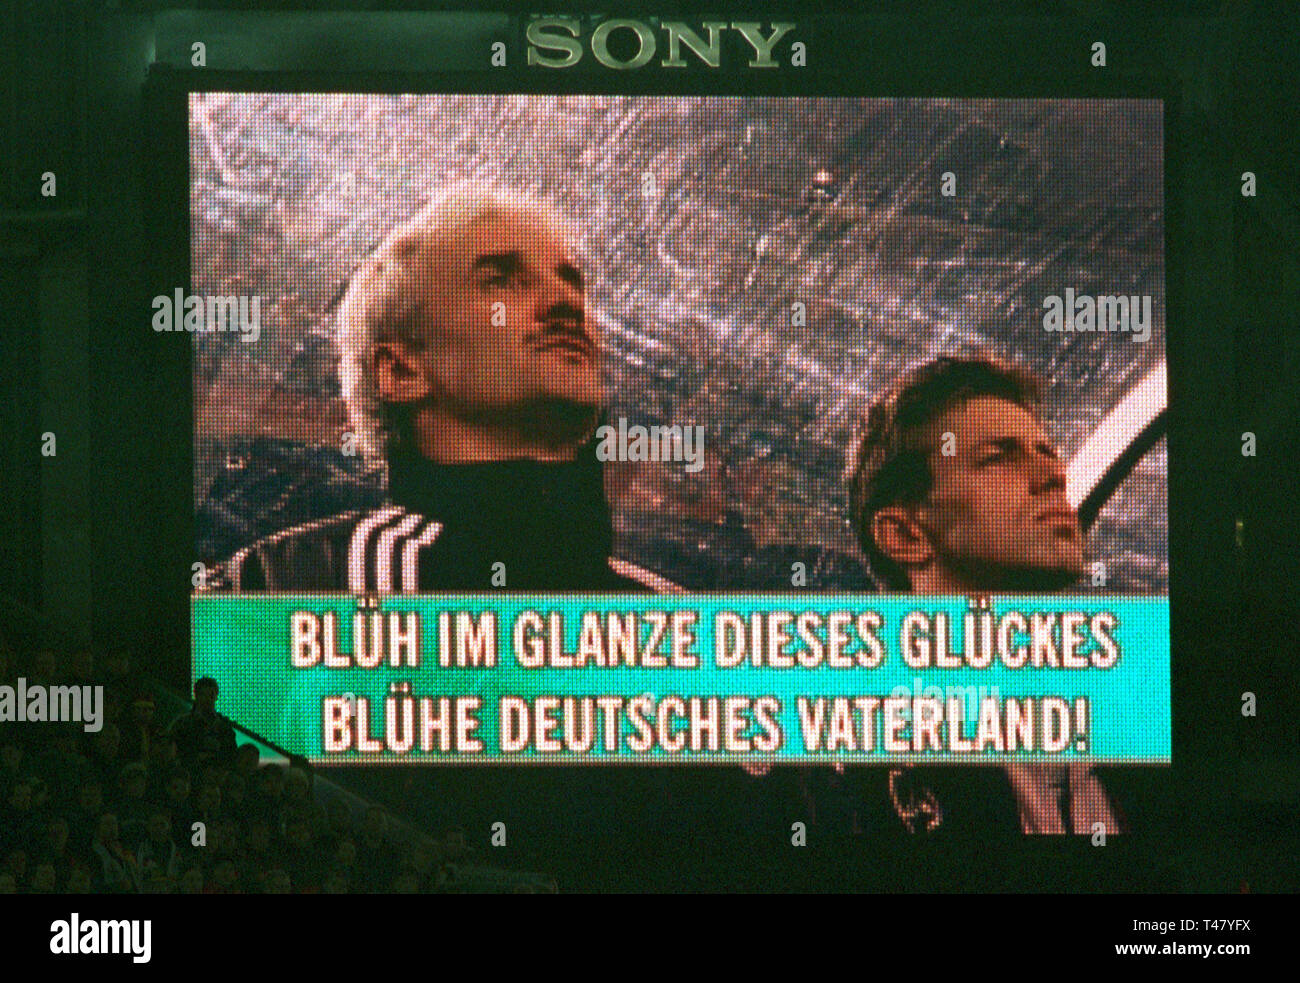 Westfalenstadion Dortmund Germany 14.11.2001, Football qualifier for the FIFA World Cup 2002, Germany (white) vs Ukraine (blue) --- German coaches Rudi VOELLER and Michael SKIBBE on video wall with lyrics of German national anthem : BlŸh (Blueh) im Glanze dieses GlŸckes (Glueckes), BlŸhe (Bluehe) Deutsches Vaterland), Flourish in the radiance of this fortune,   Flourish, German fatherland! Stock Photo